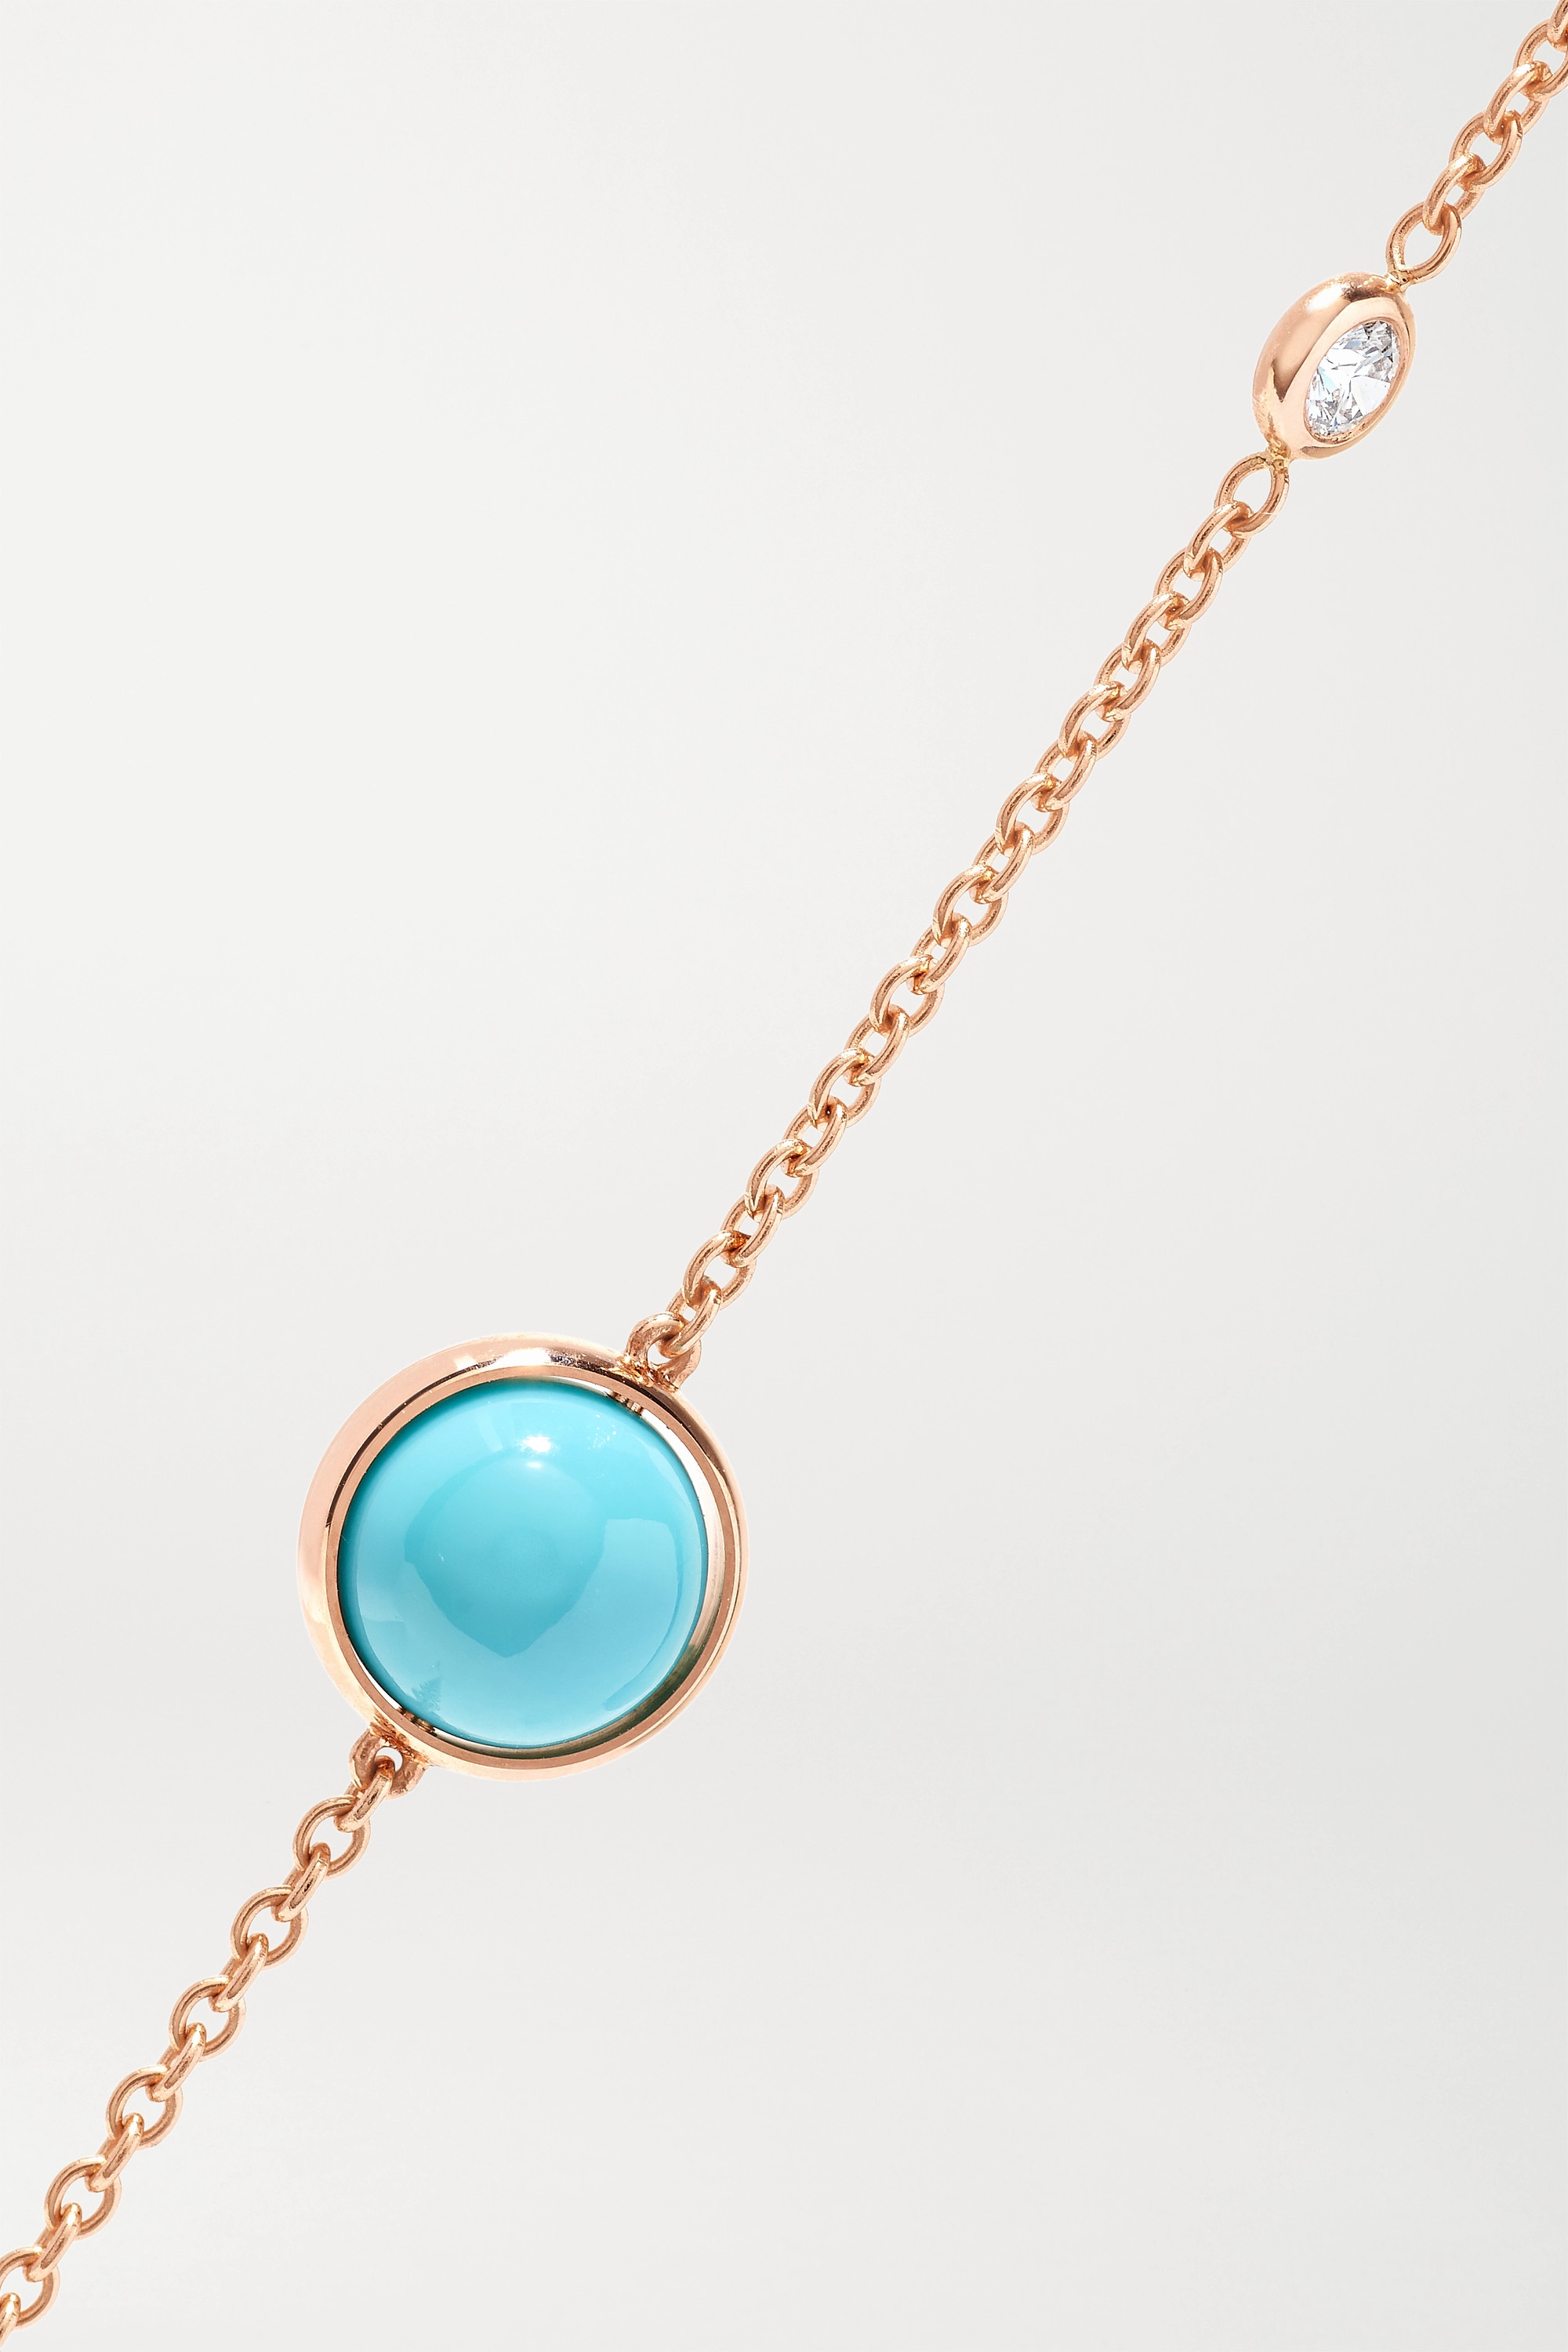 Piaget Collier en or rose 18 carats, turquoise et diamant Possession